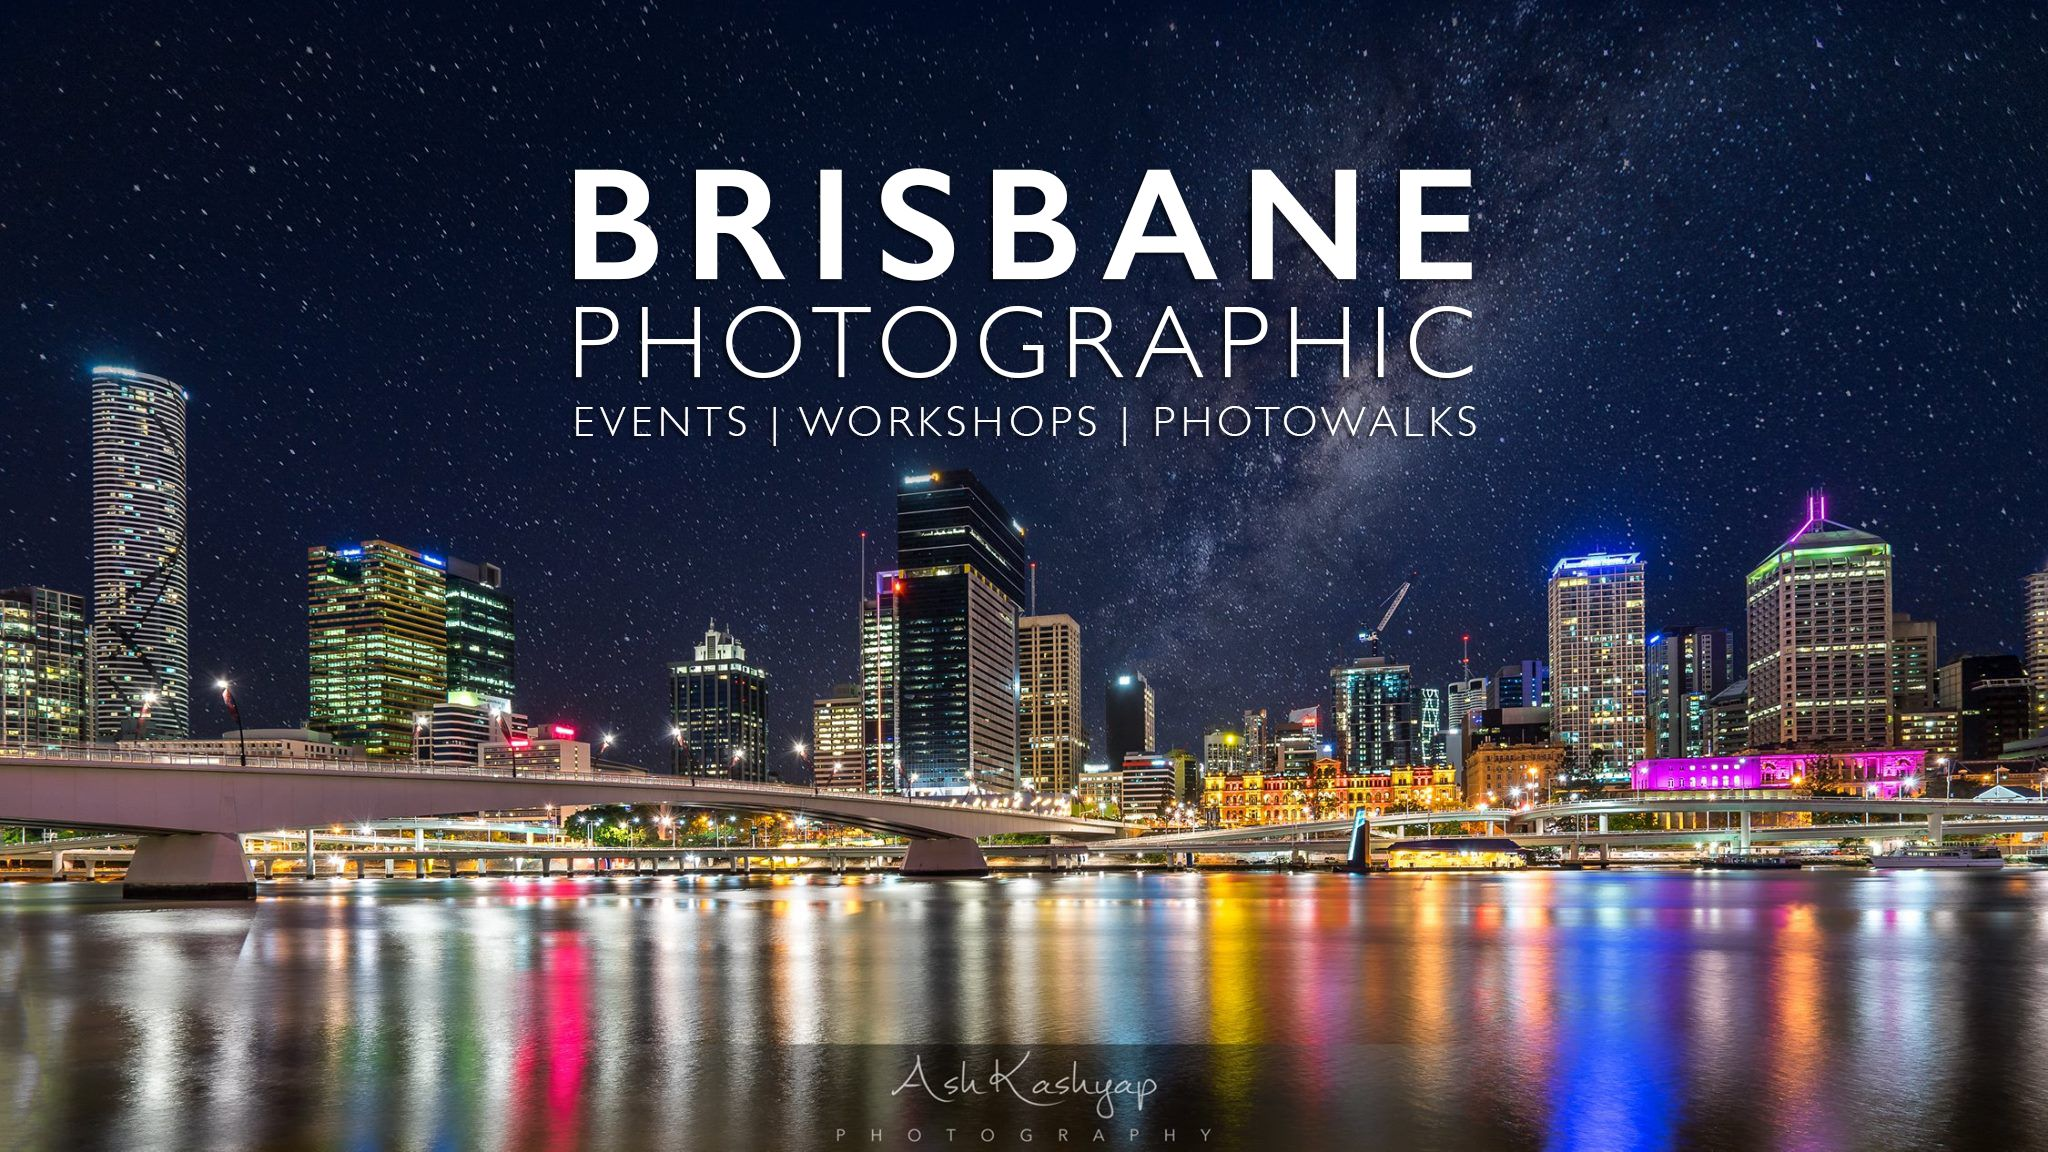 Brisbane Photographic Meetup